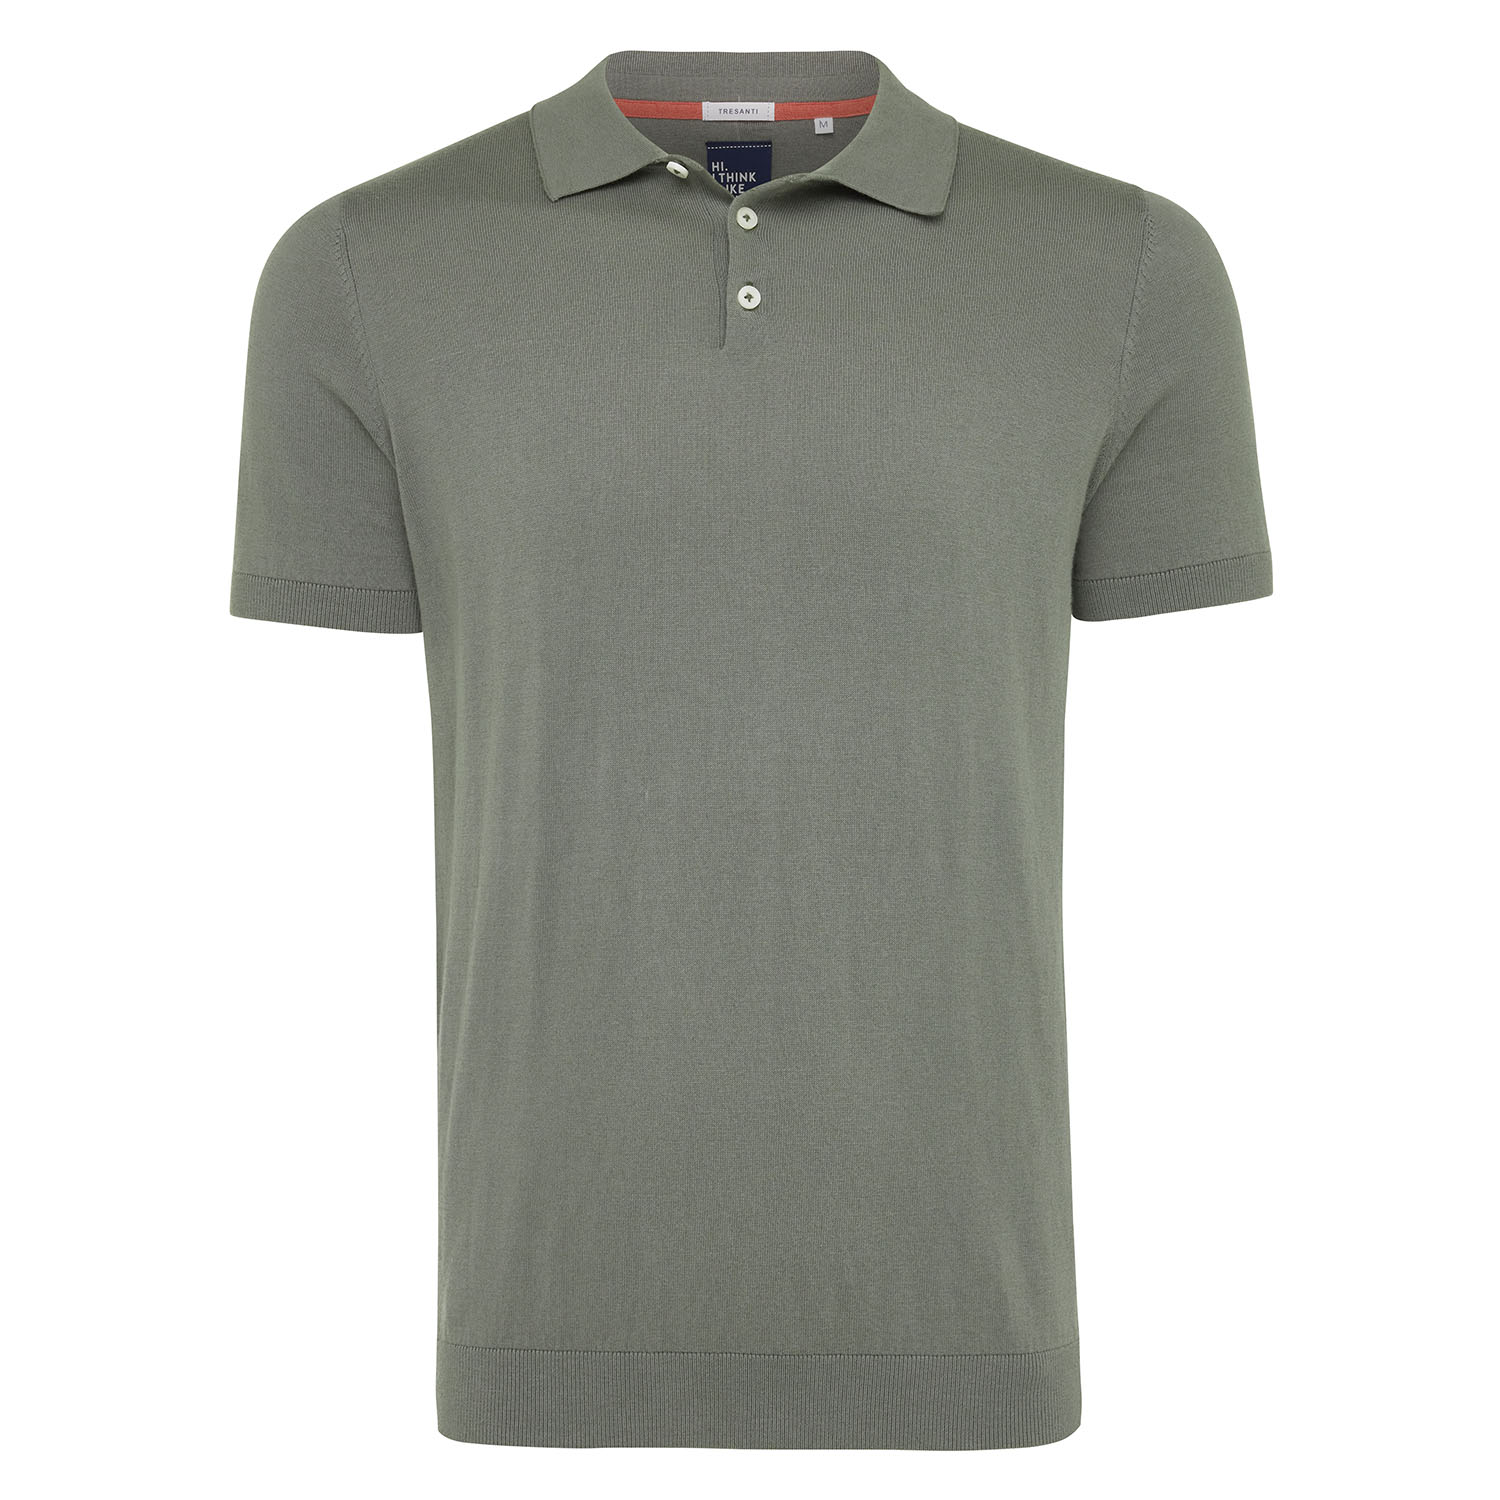 Trevor | Pullover short sleeve cotton/cashmere avage green